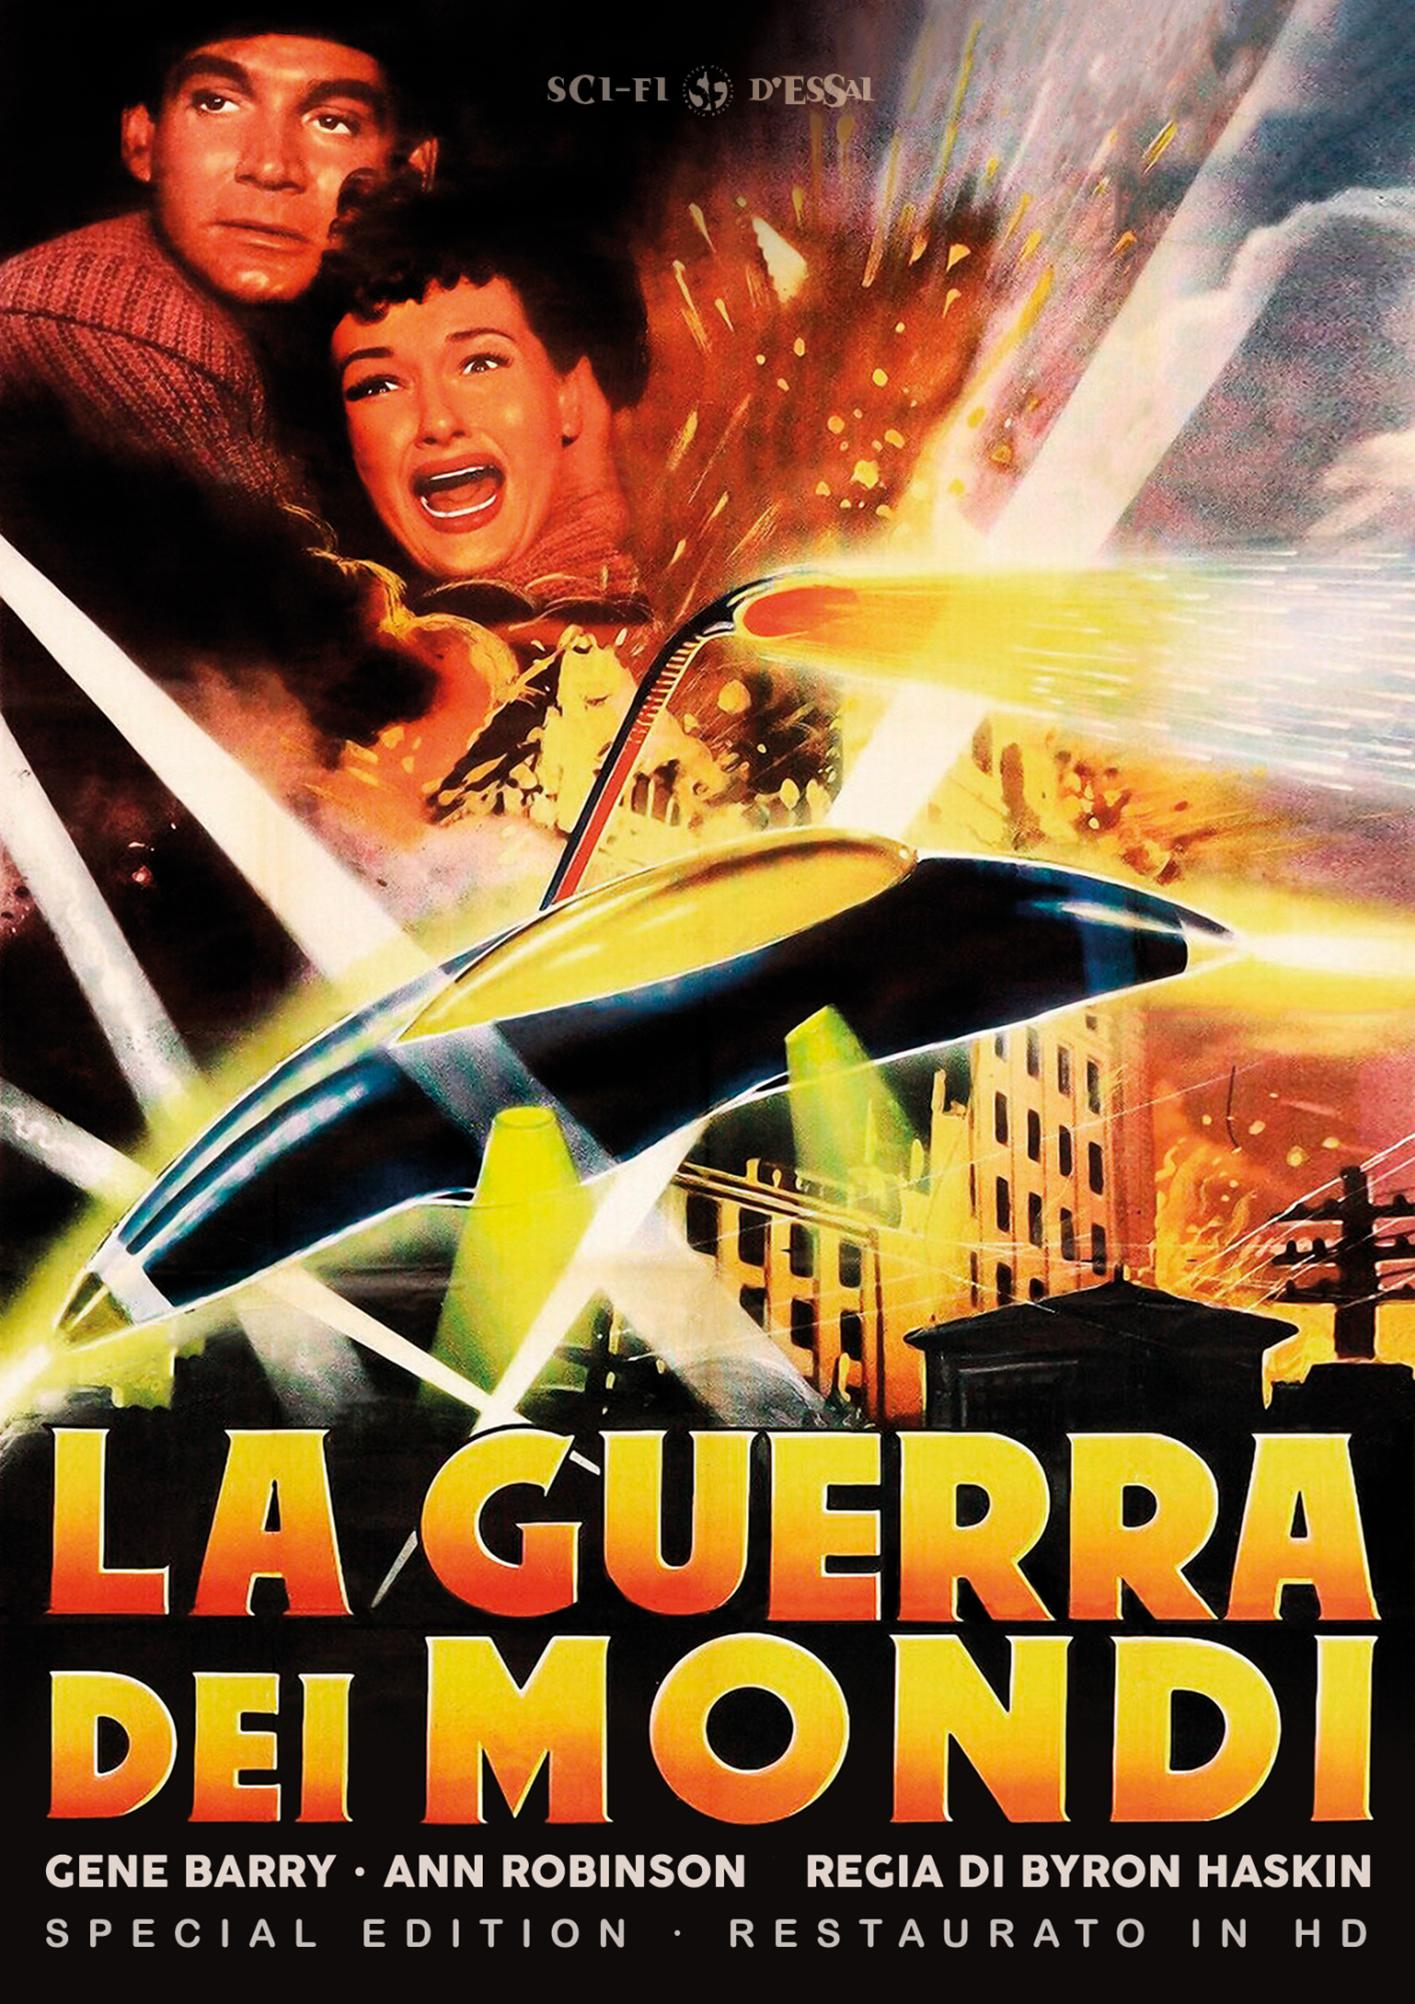 LA GUERRA DEI MONDI - SPECIAL EDITION (RESTAURATO IN HD) (DVD+P